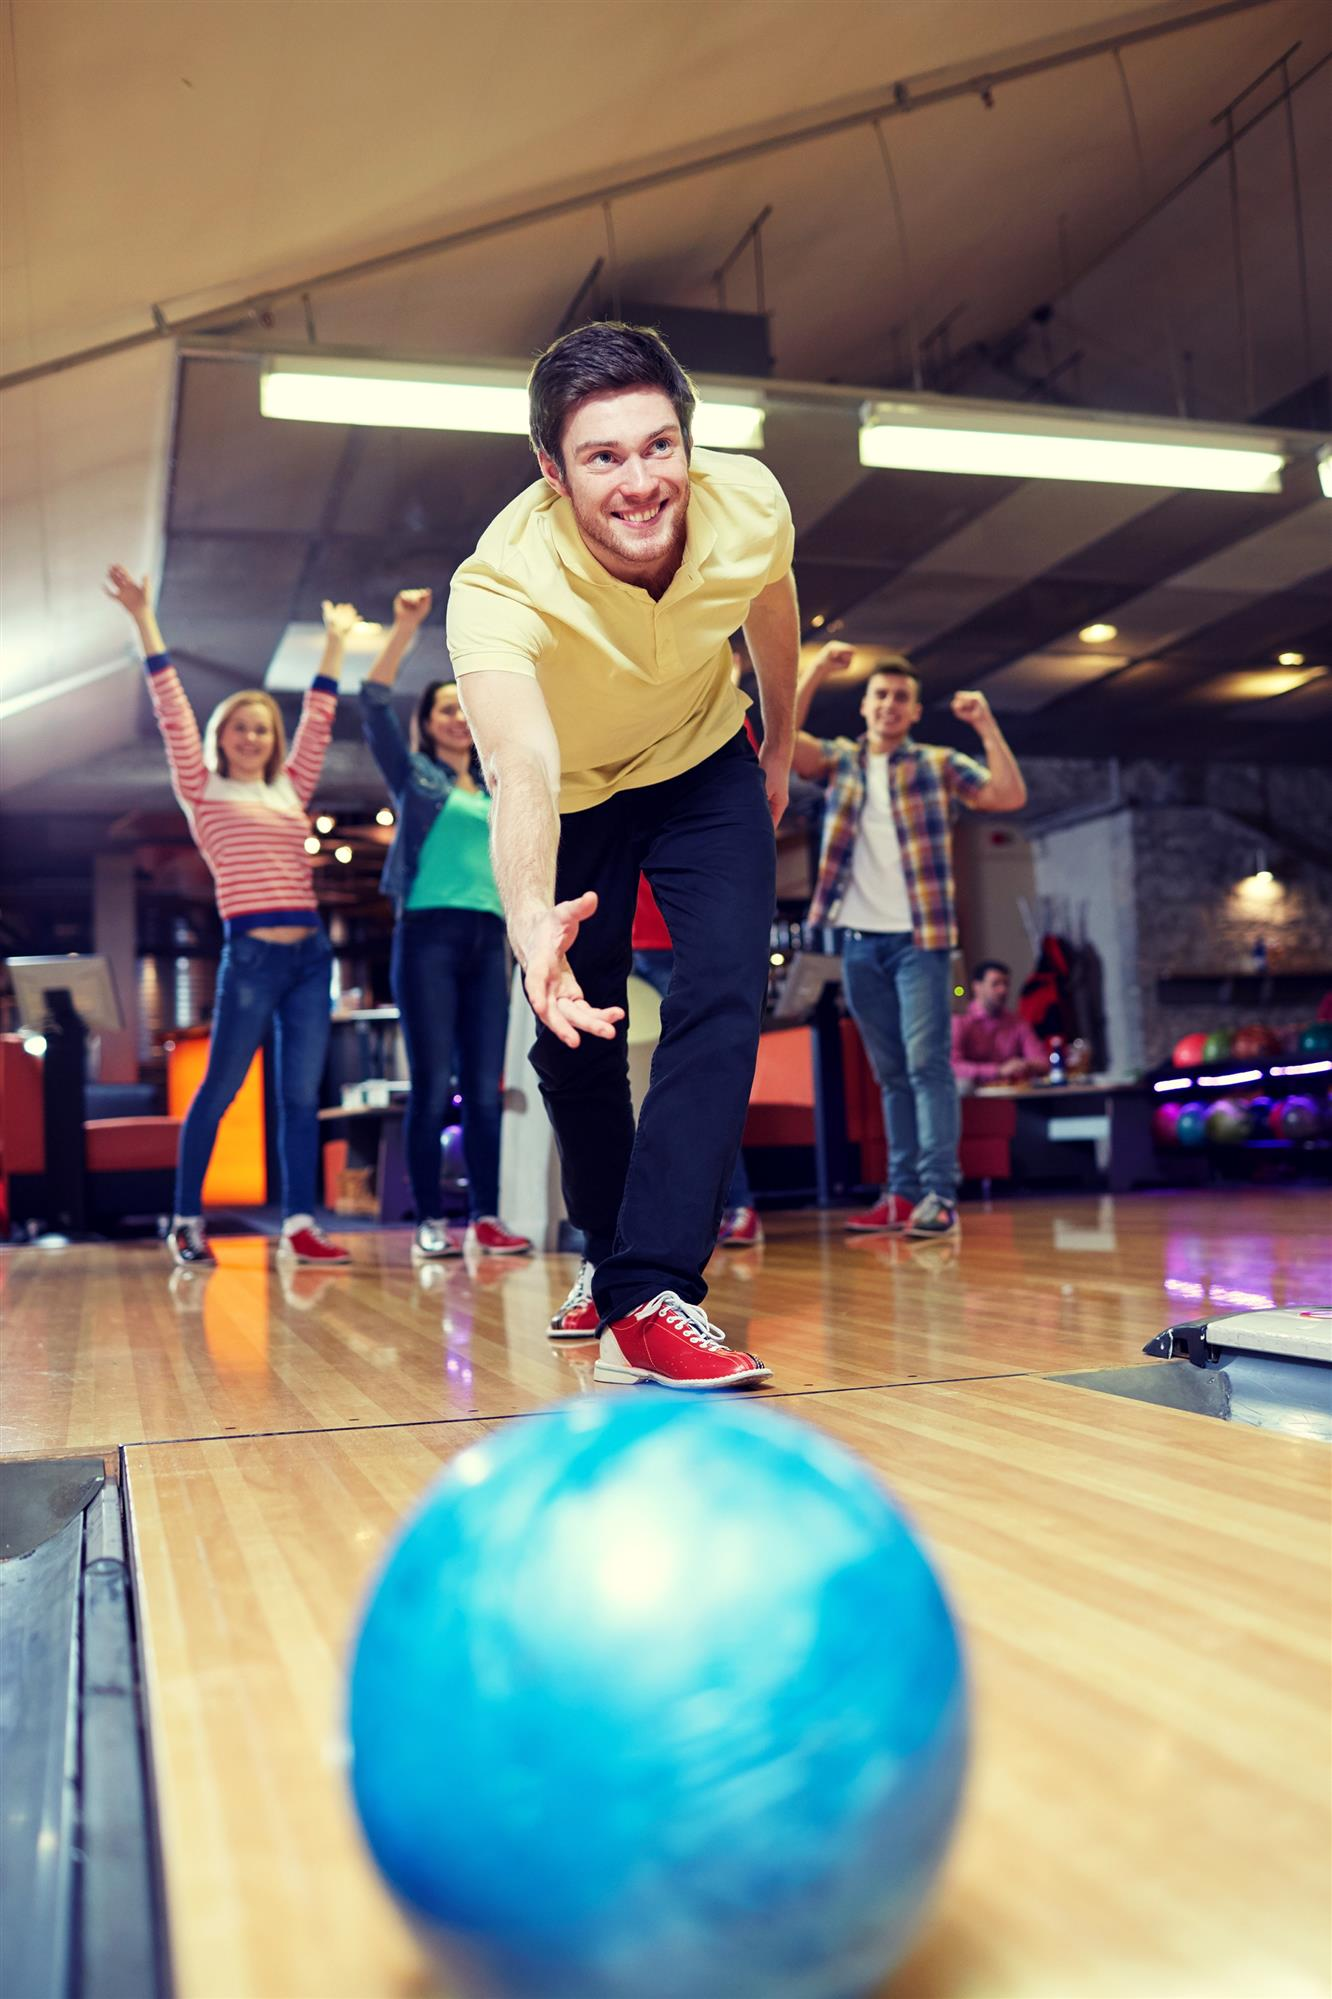 Bowling Equipment for Sale